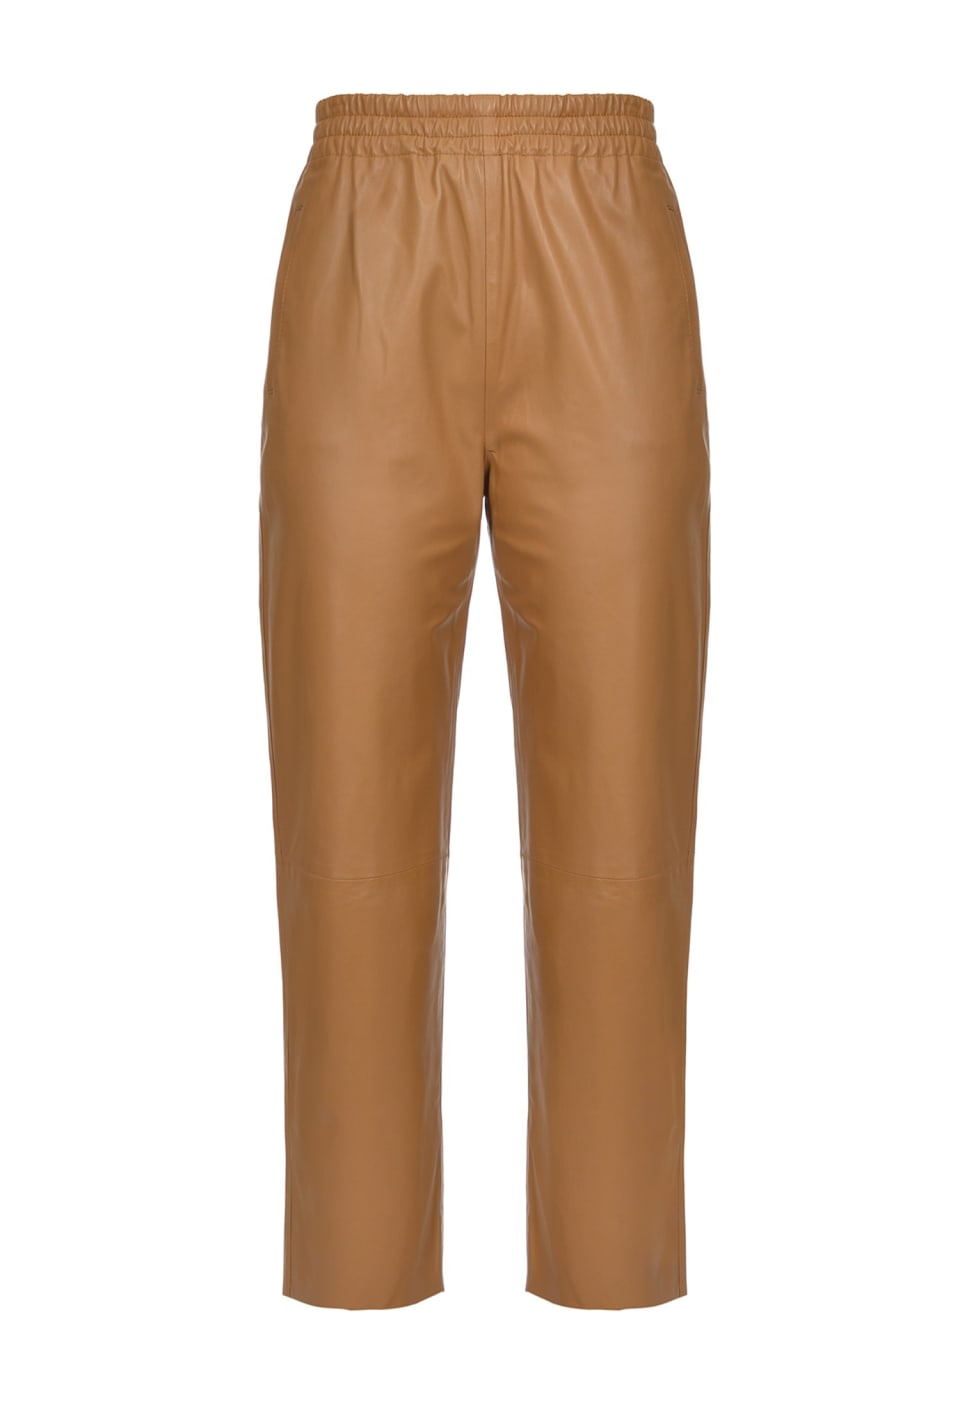 Ultralight leather trousers - Pinko